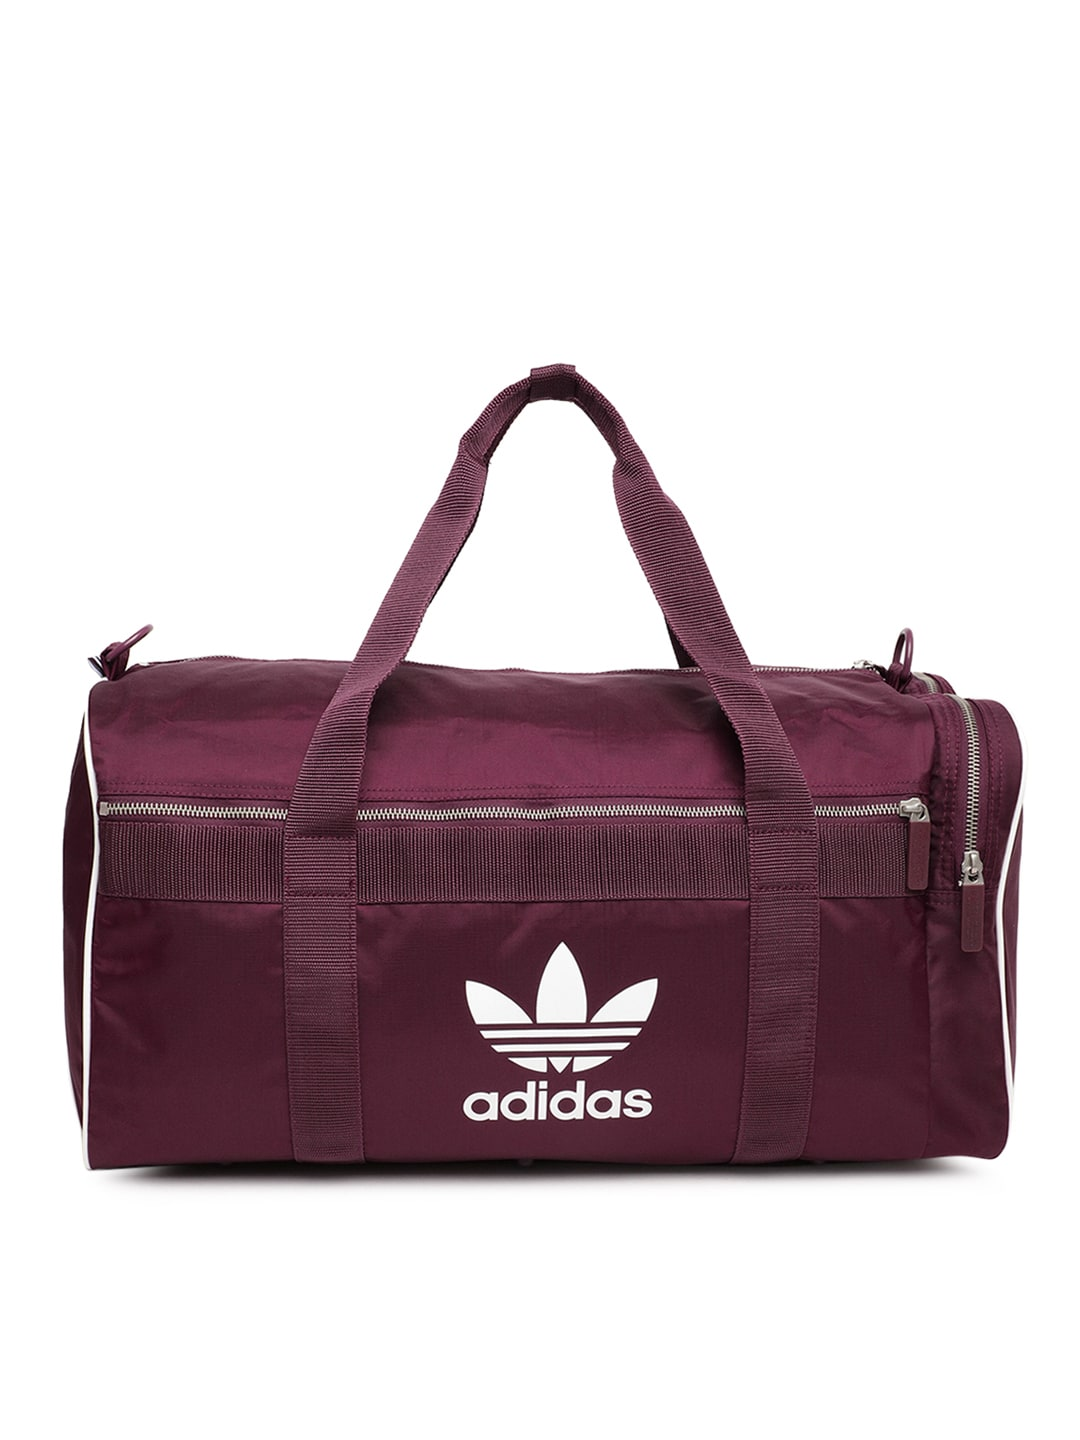 Adidas Nike Bags - Buy Adidas Nike Bags online in India 8a24523033167